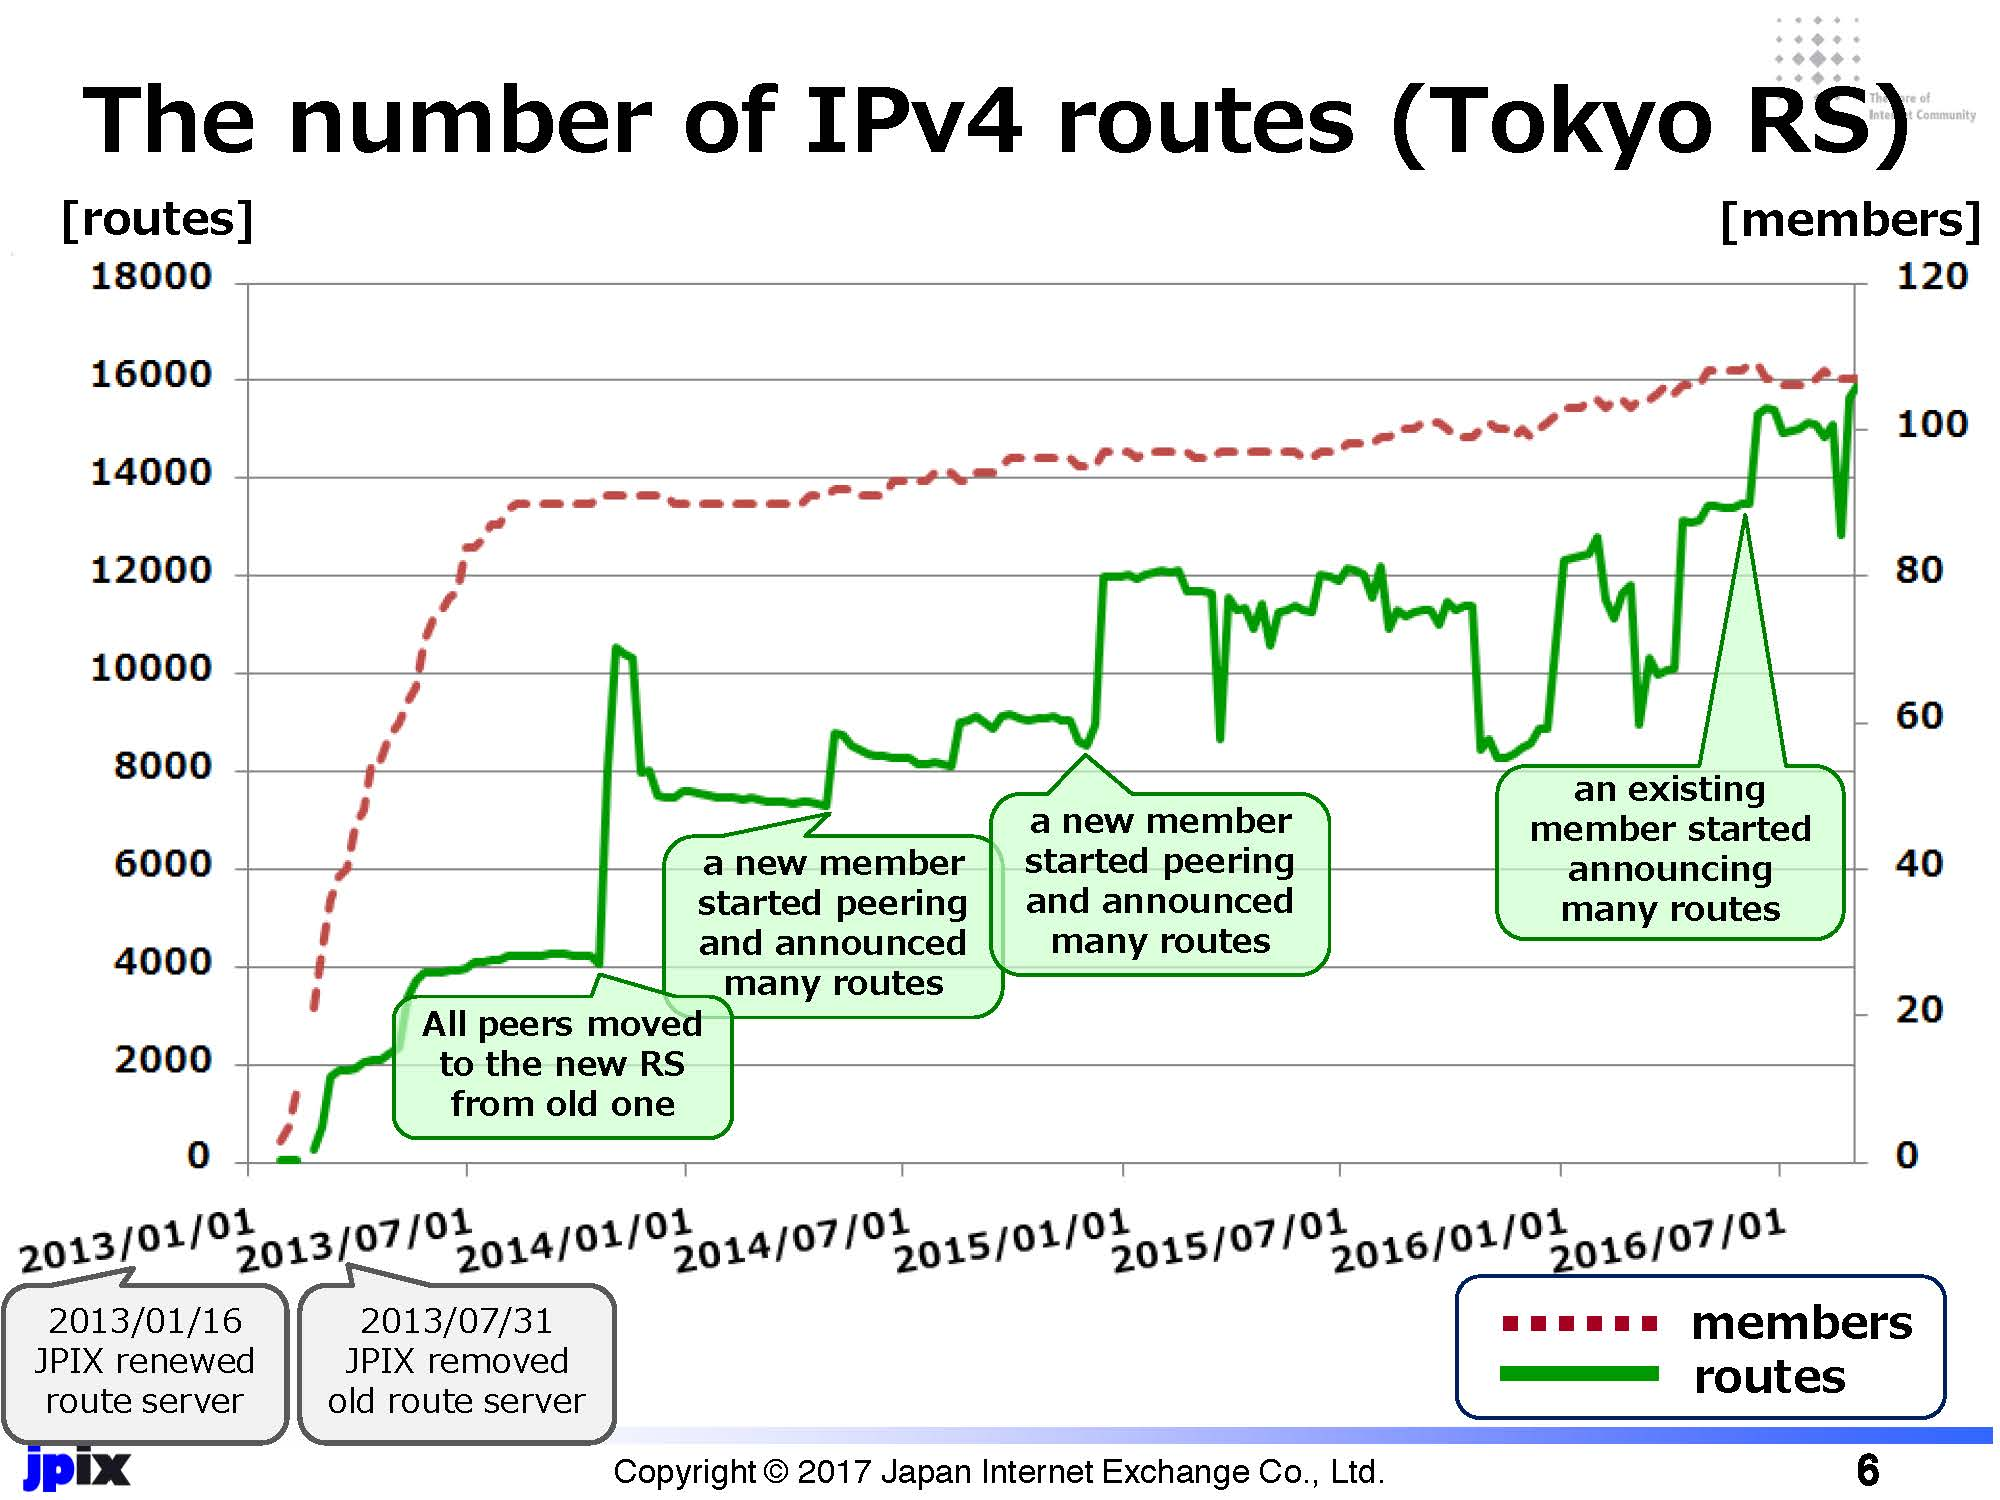 Figure 1: The number of IPv4 routes observed at JPIX Tokyo route server